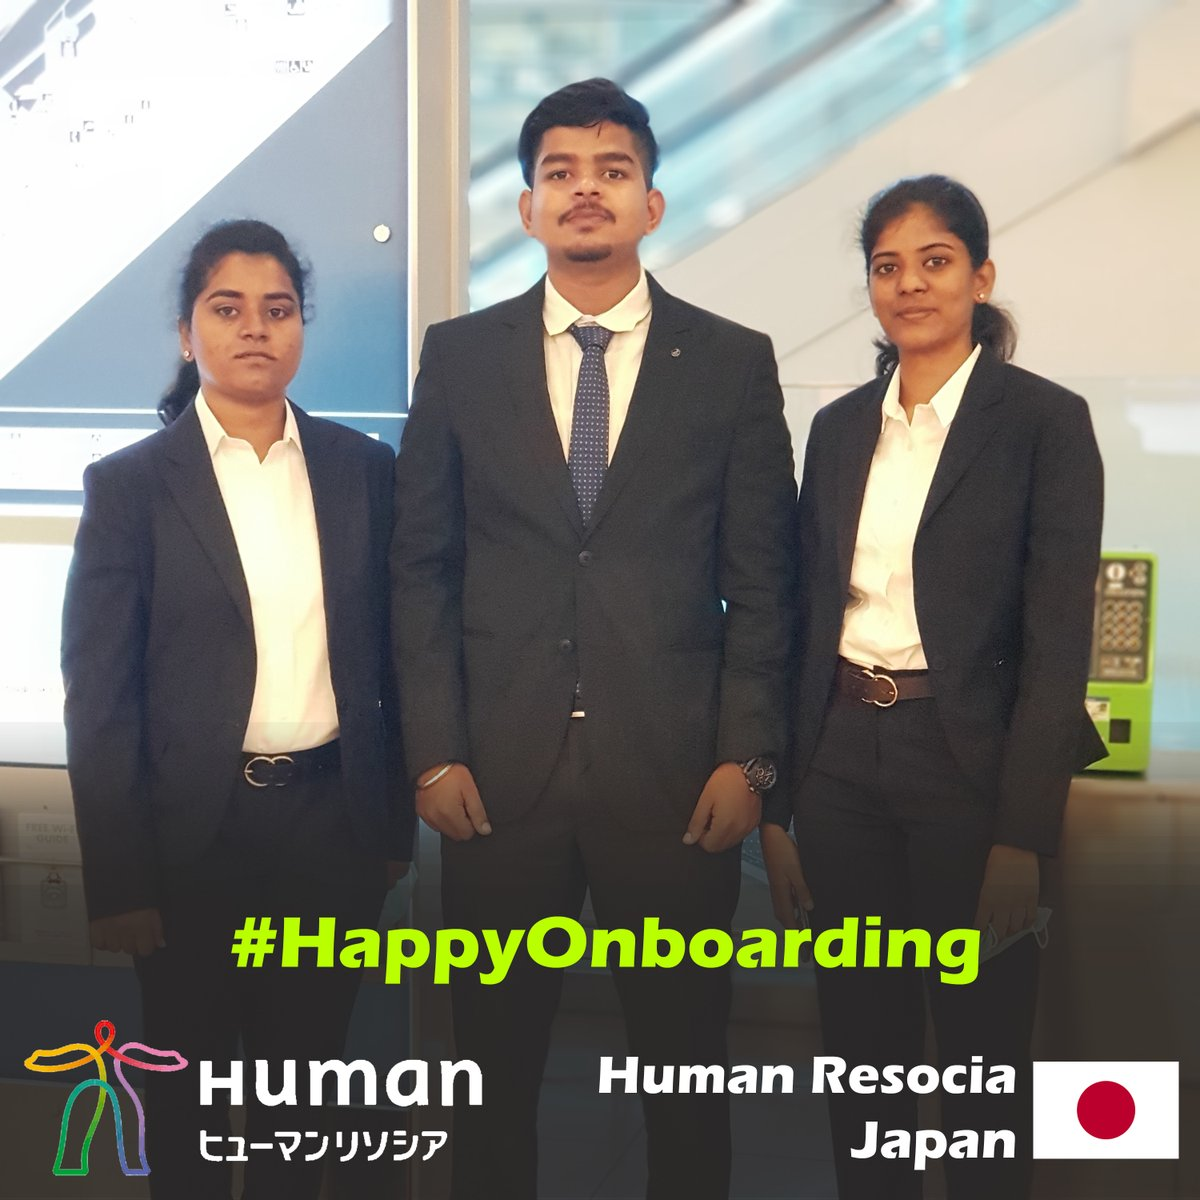 Congratulation to TeamCIT for their successful On Boarding in Human Resocia, Japan and our best wishes for all you future endeavors.  #HappyCITian #HumanResocia #ChennaiInstituteofTechnology #TransformingLives  #JapanPlacementspic.twitter.com/TL51uaPdU2